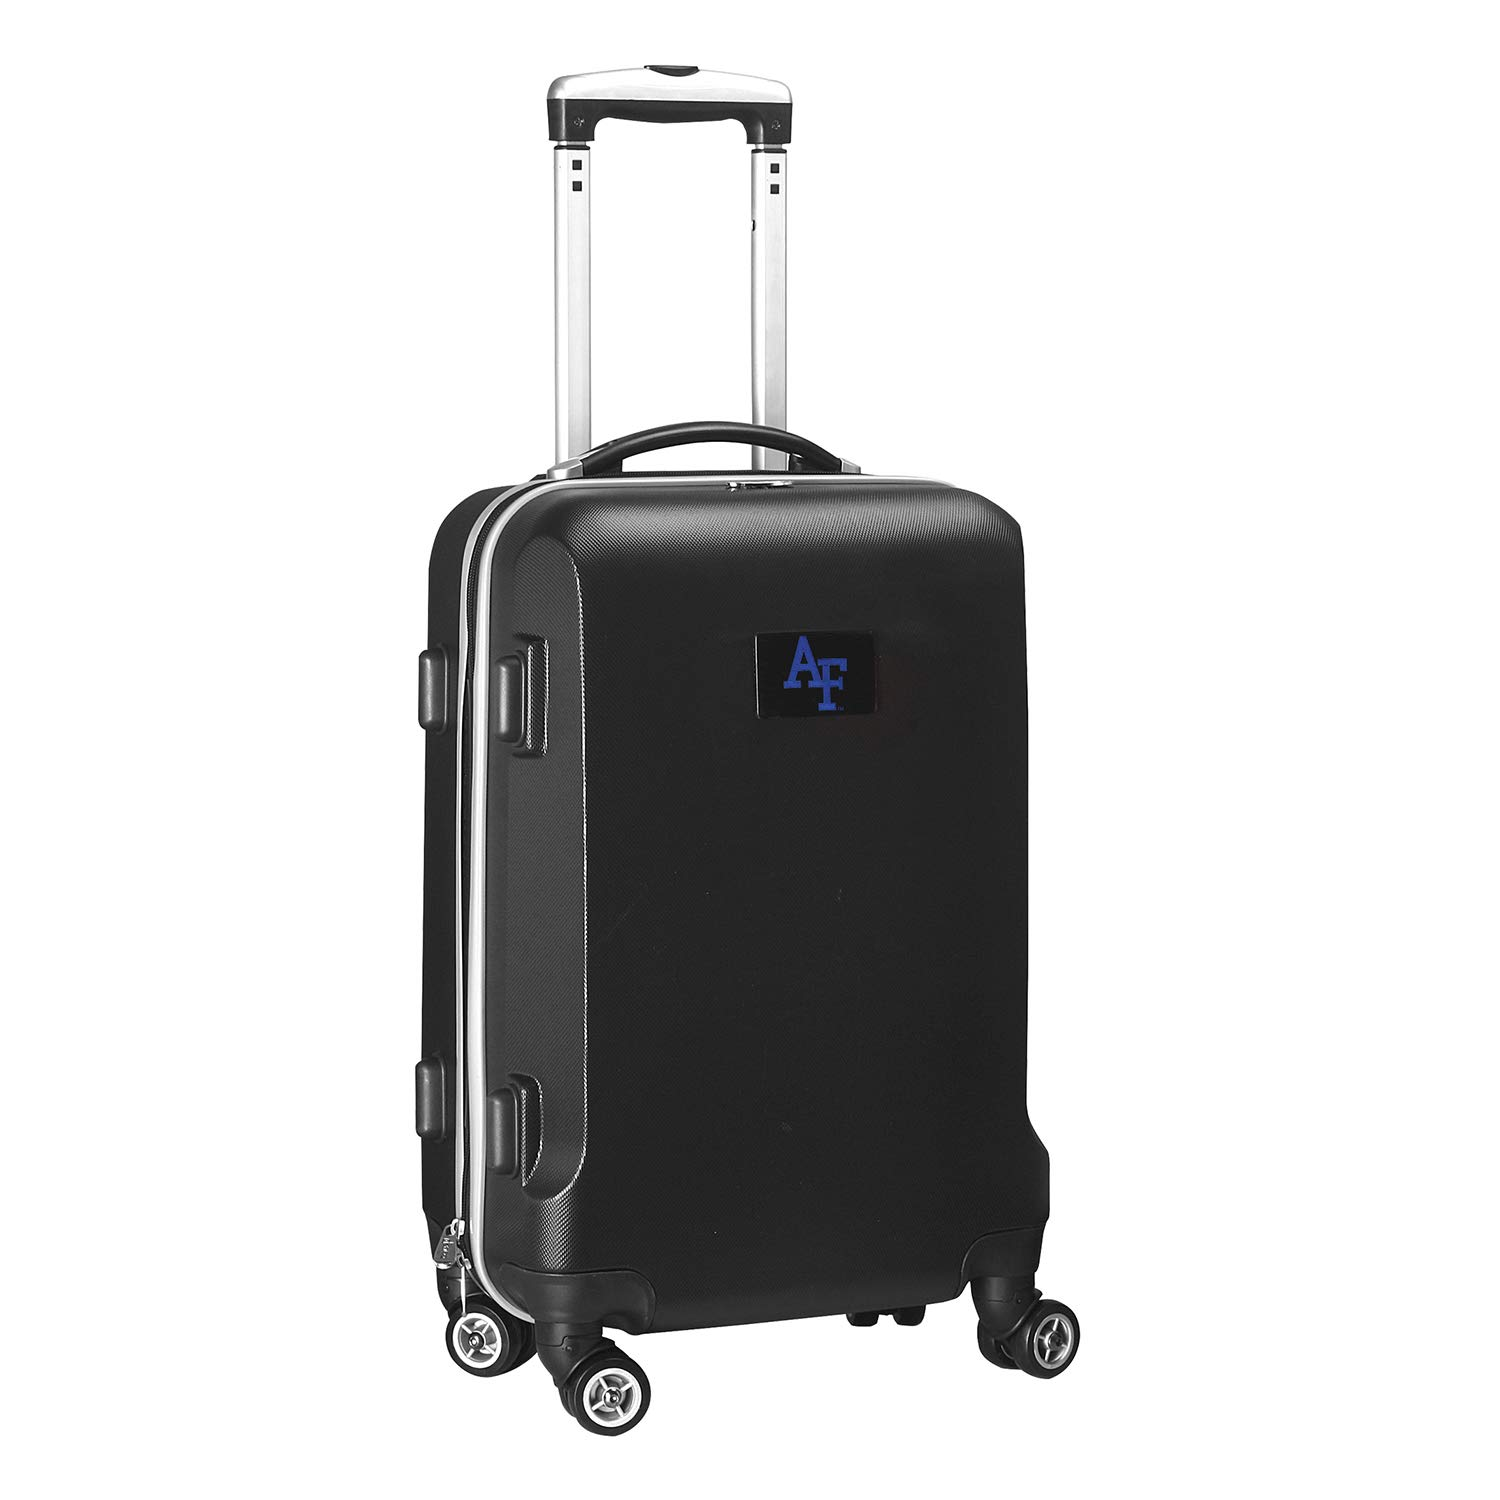 Denco NCAA Air Force Falcons Carry-On Hardcase Luggage Spinner, Black